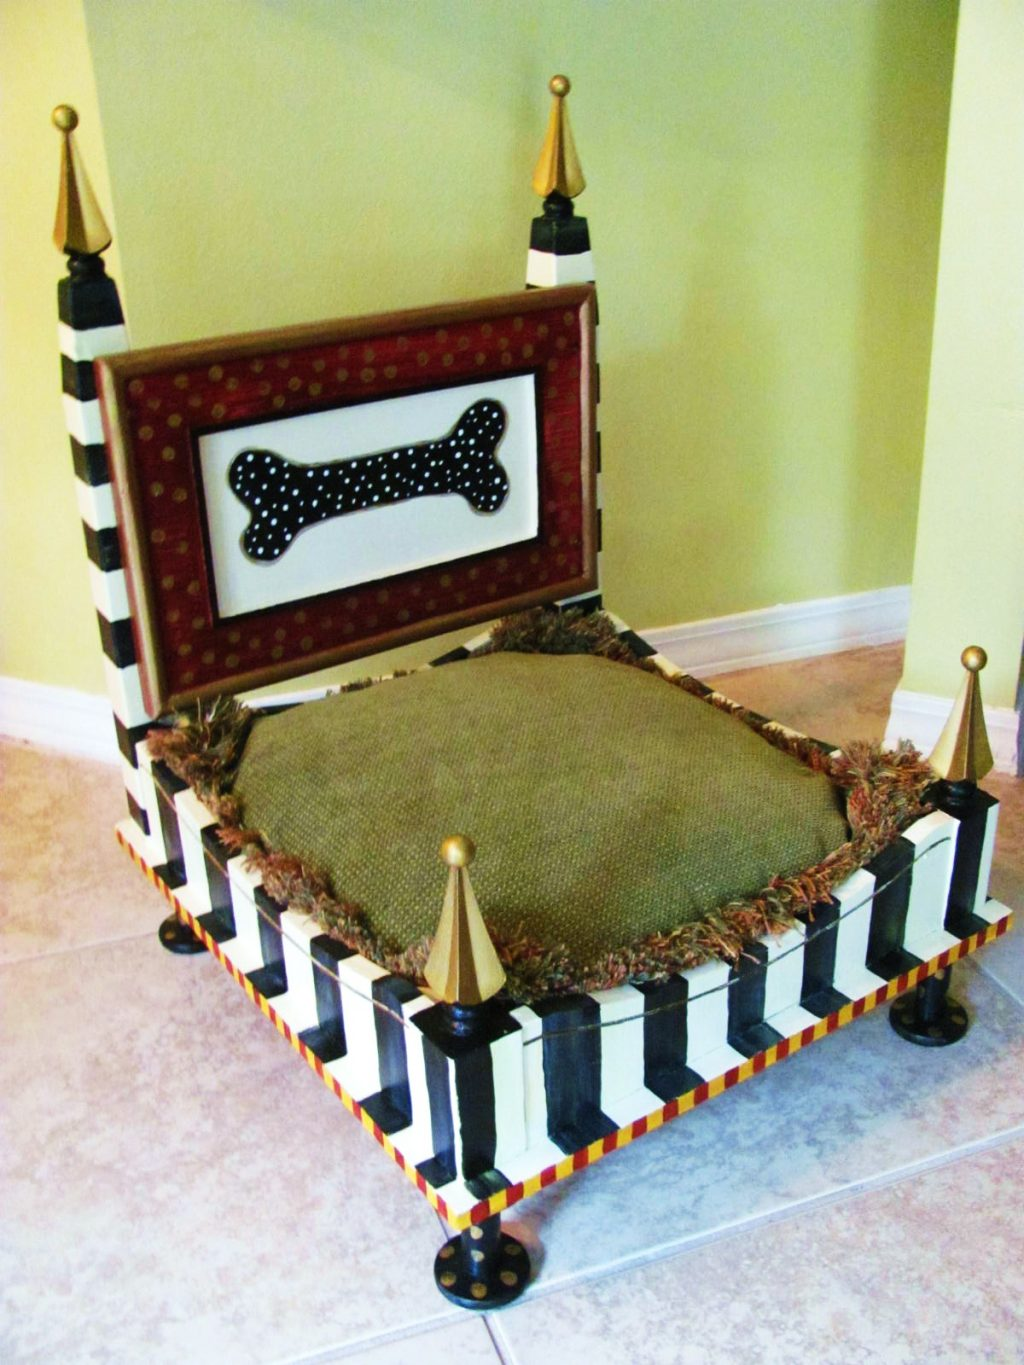 Coffee table dog bed 01 roy home design coffee table dog bed 01 geotapseo Image collections